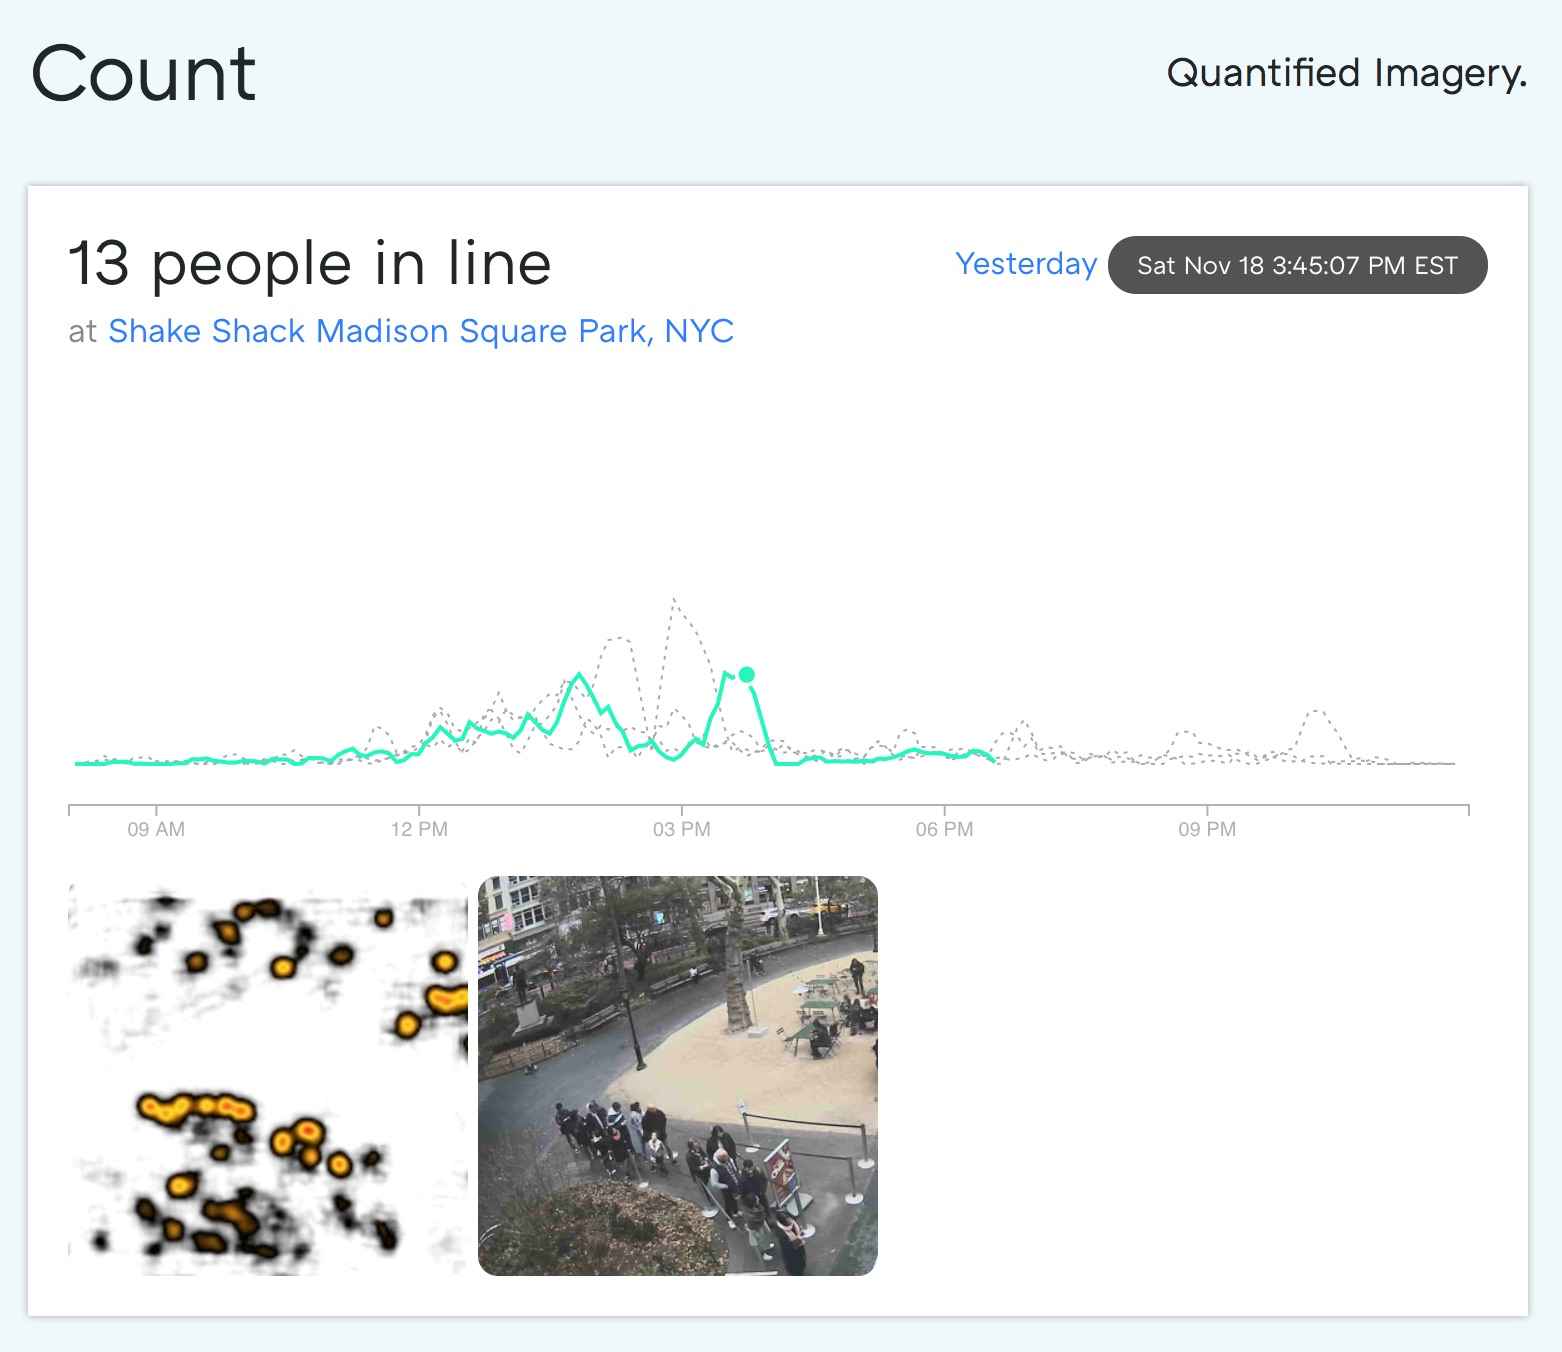 Counting Crowds and Lines with AI · dimroc